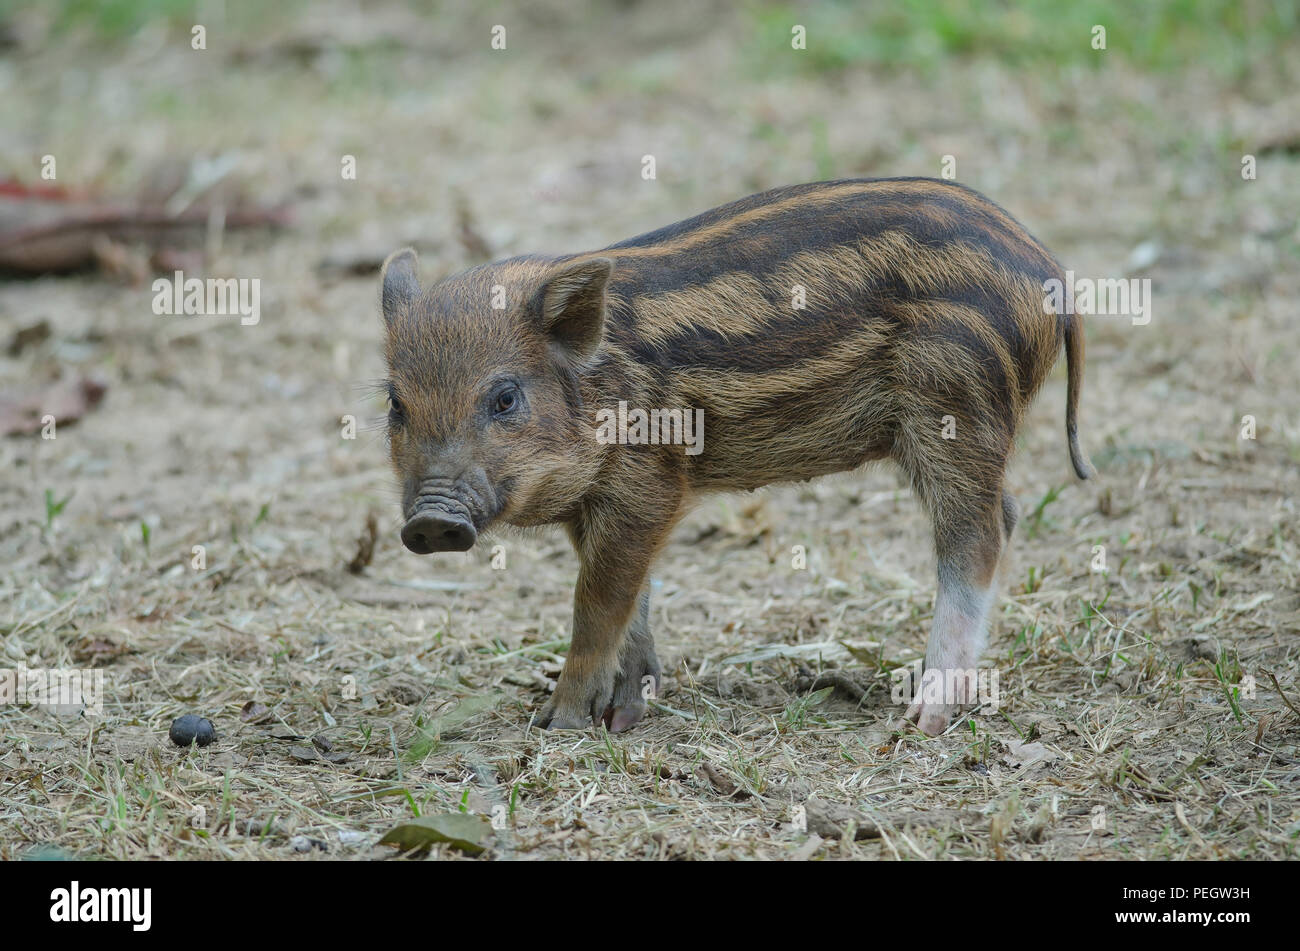 Young Wild Pig or Young wild board piglet (sus scrofa) - Stock Image